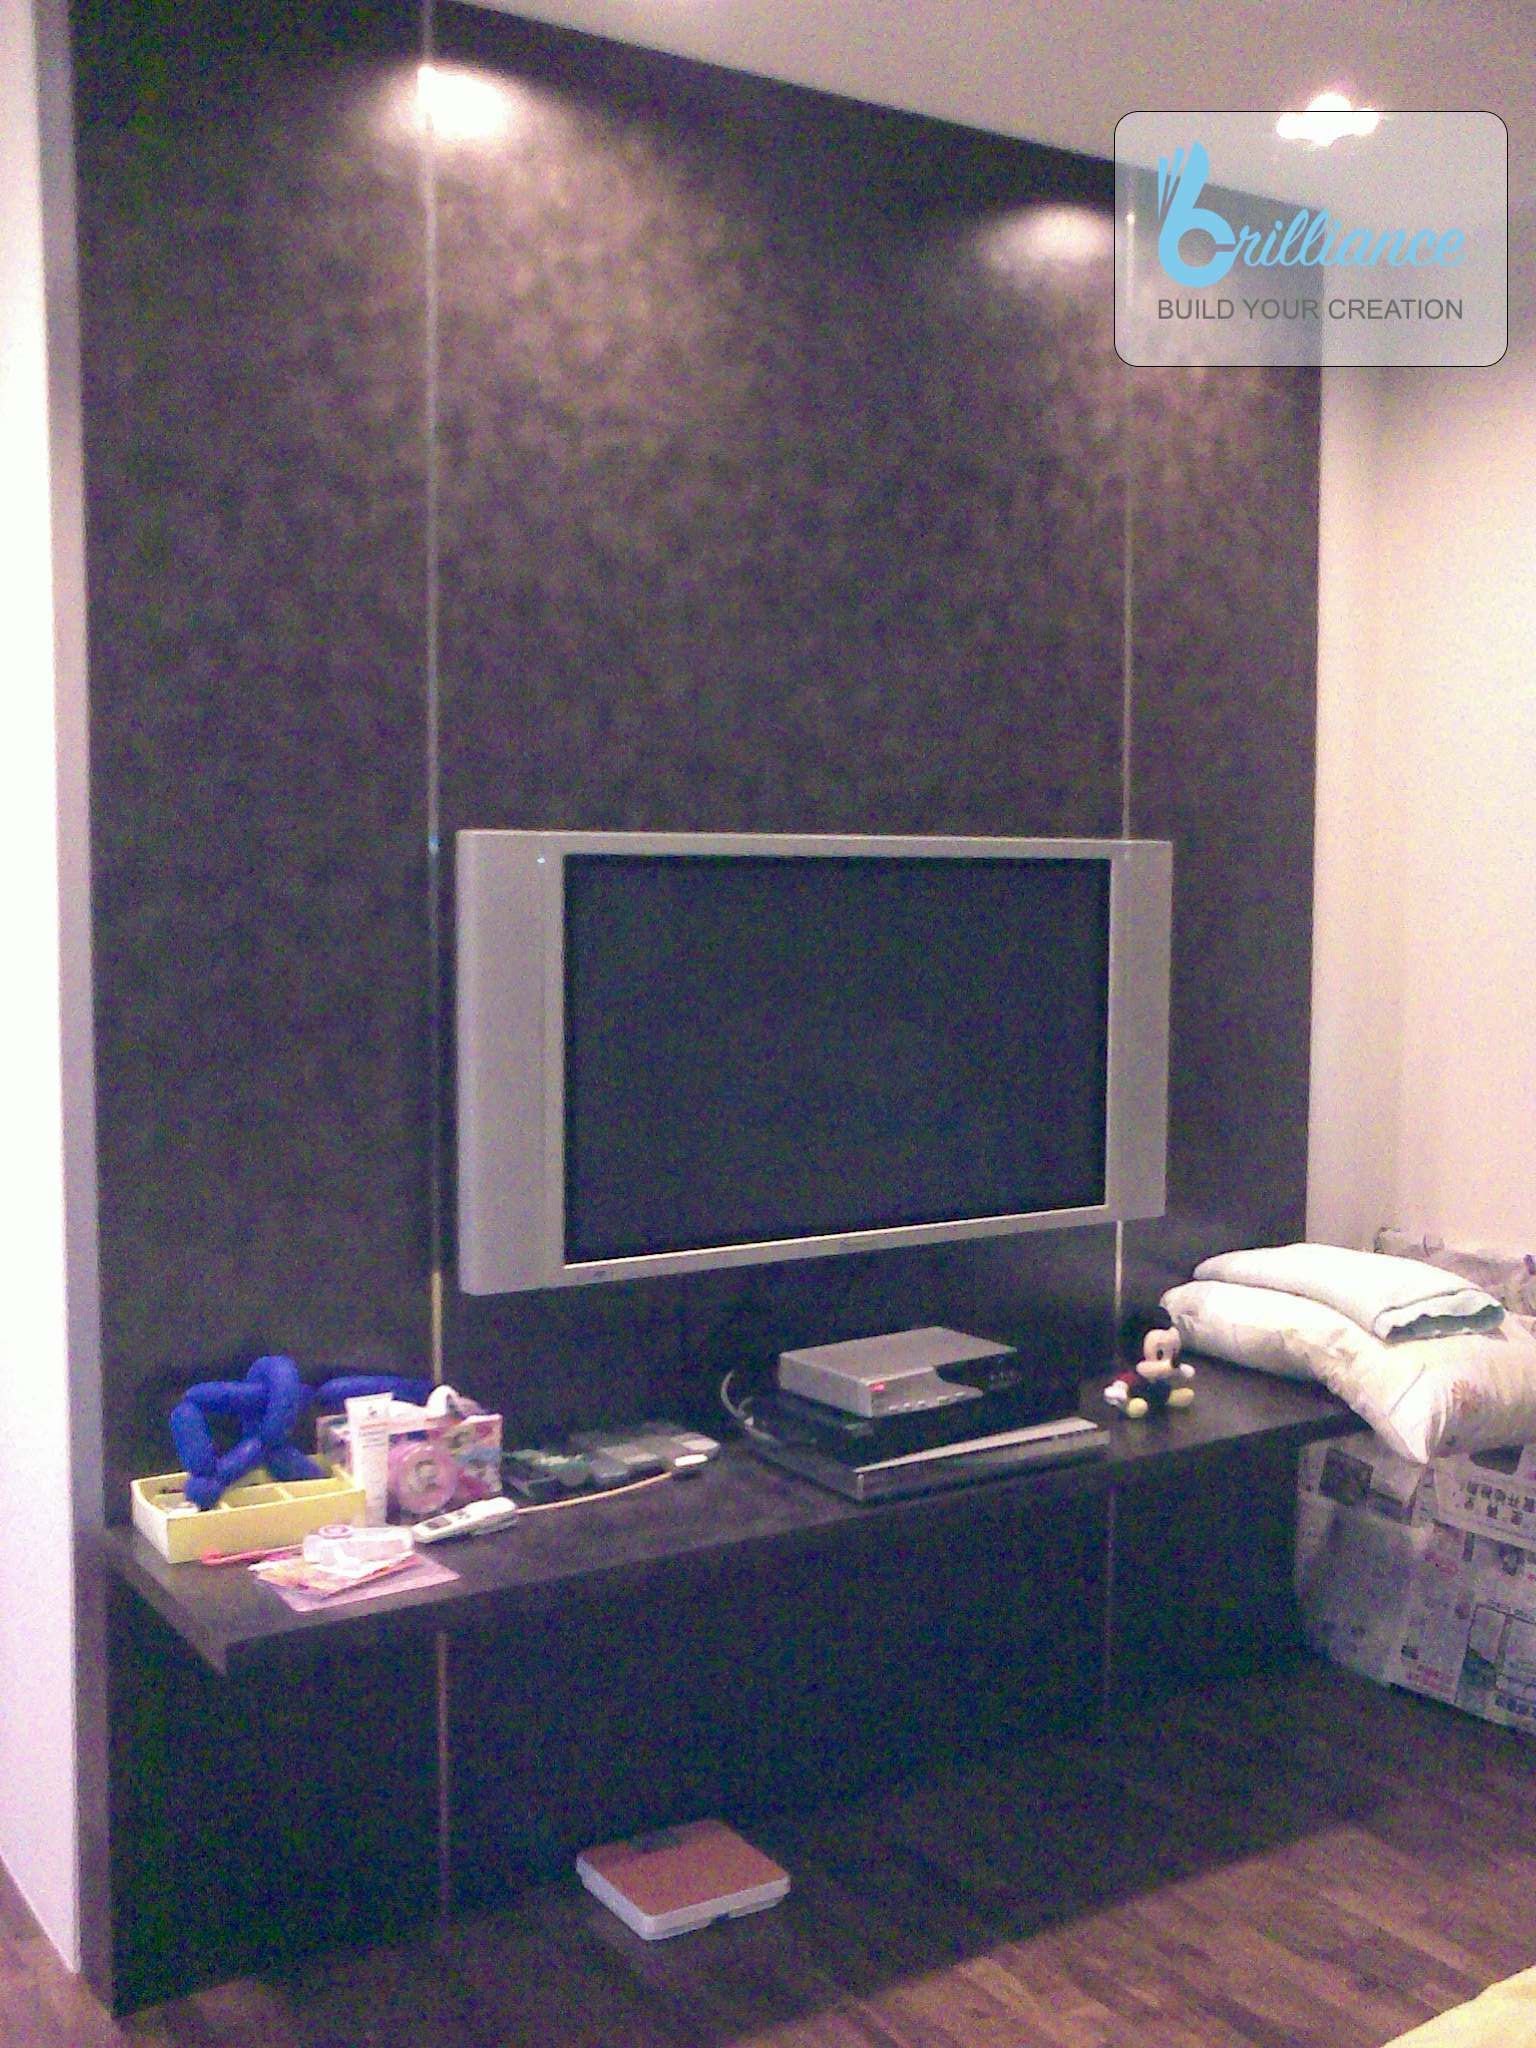 Langsat Road Renovation by Brilliance - TV console